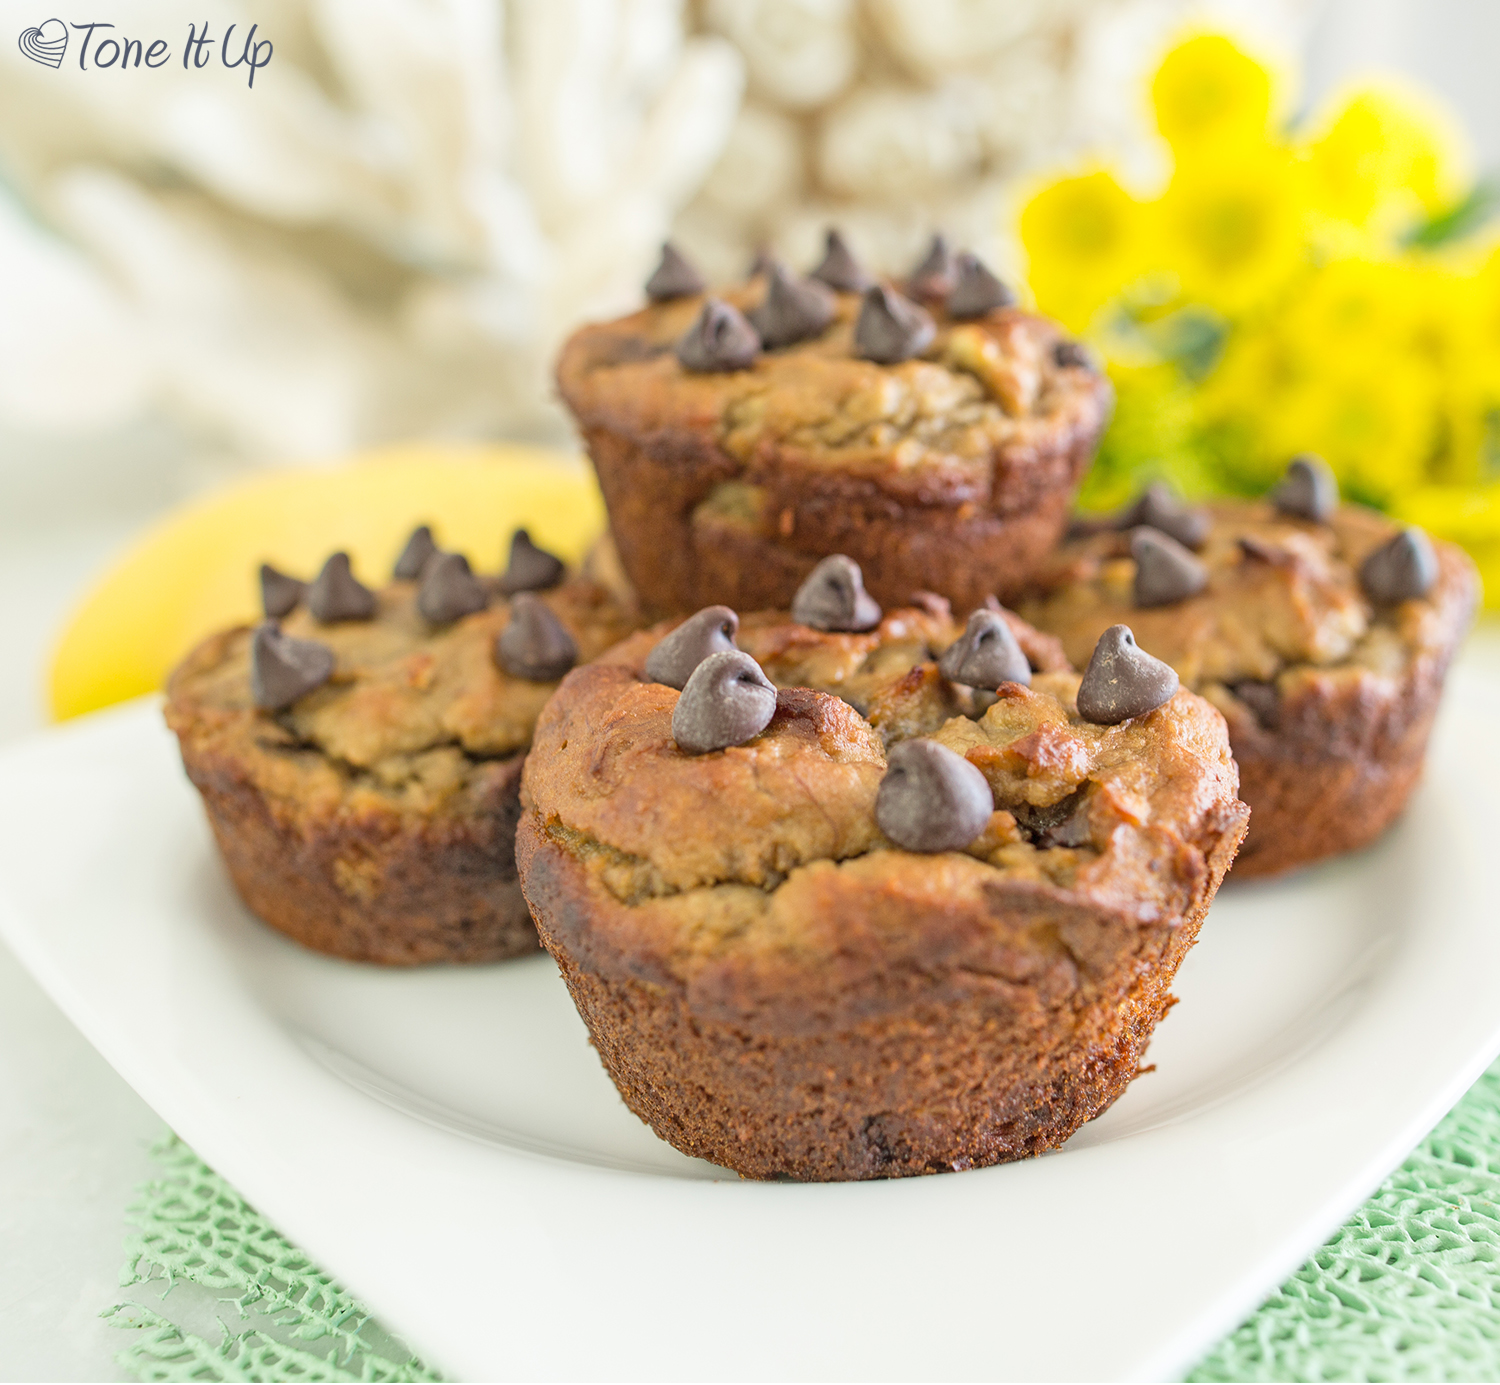 Banana-muffin-chocolate-healthy-protein-tone-it-up